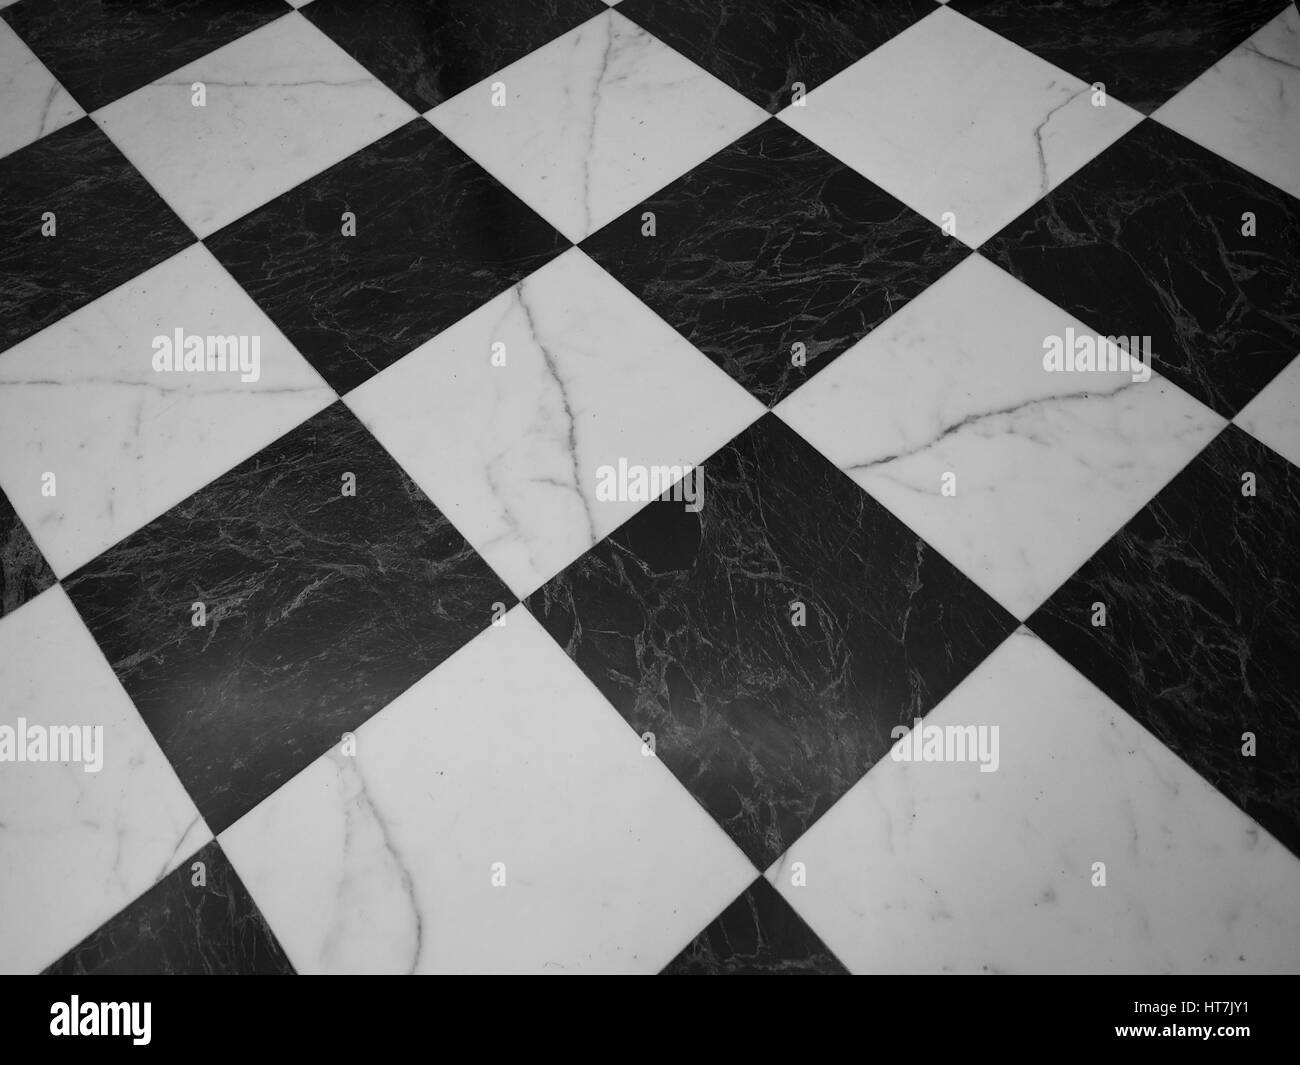 Black and white peel and stick floor tiles